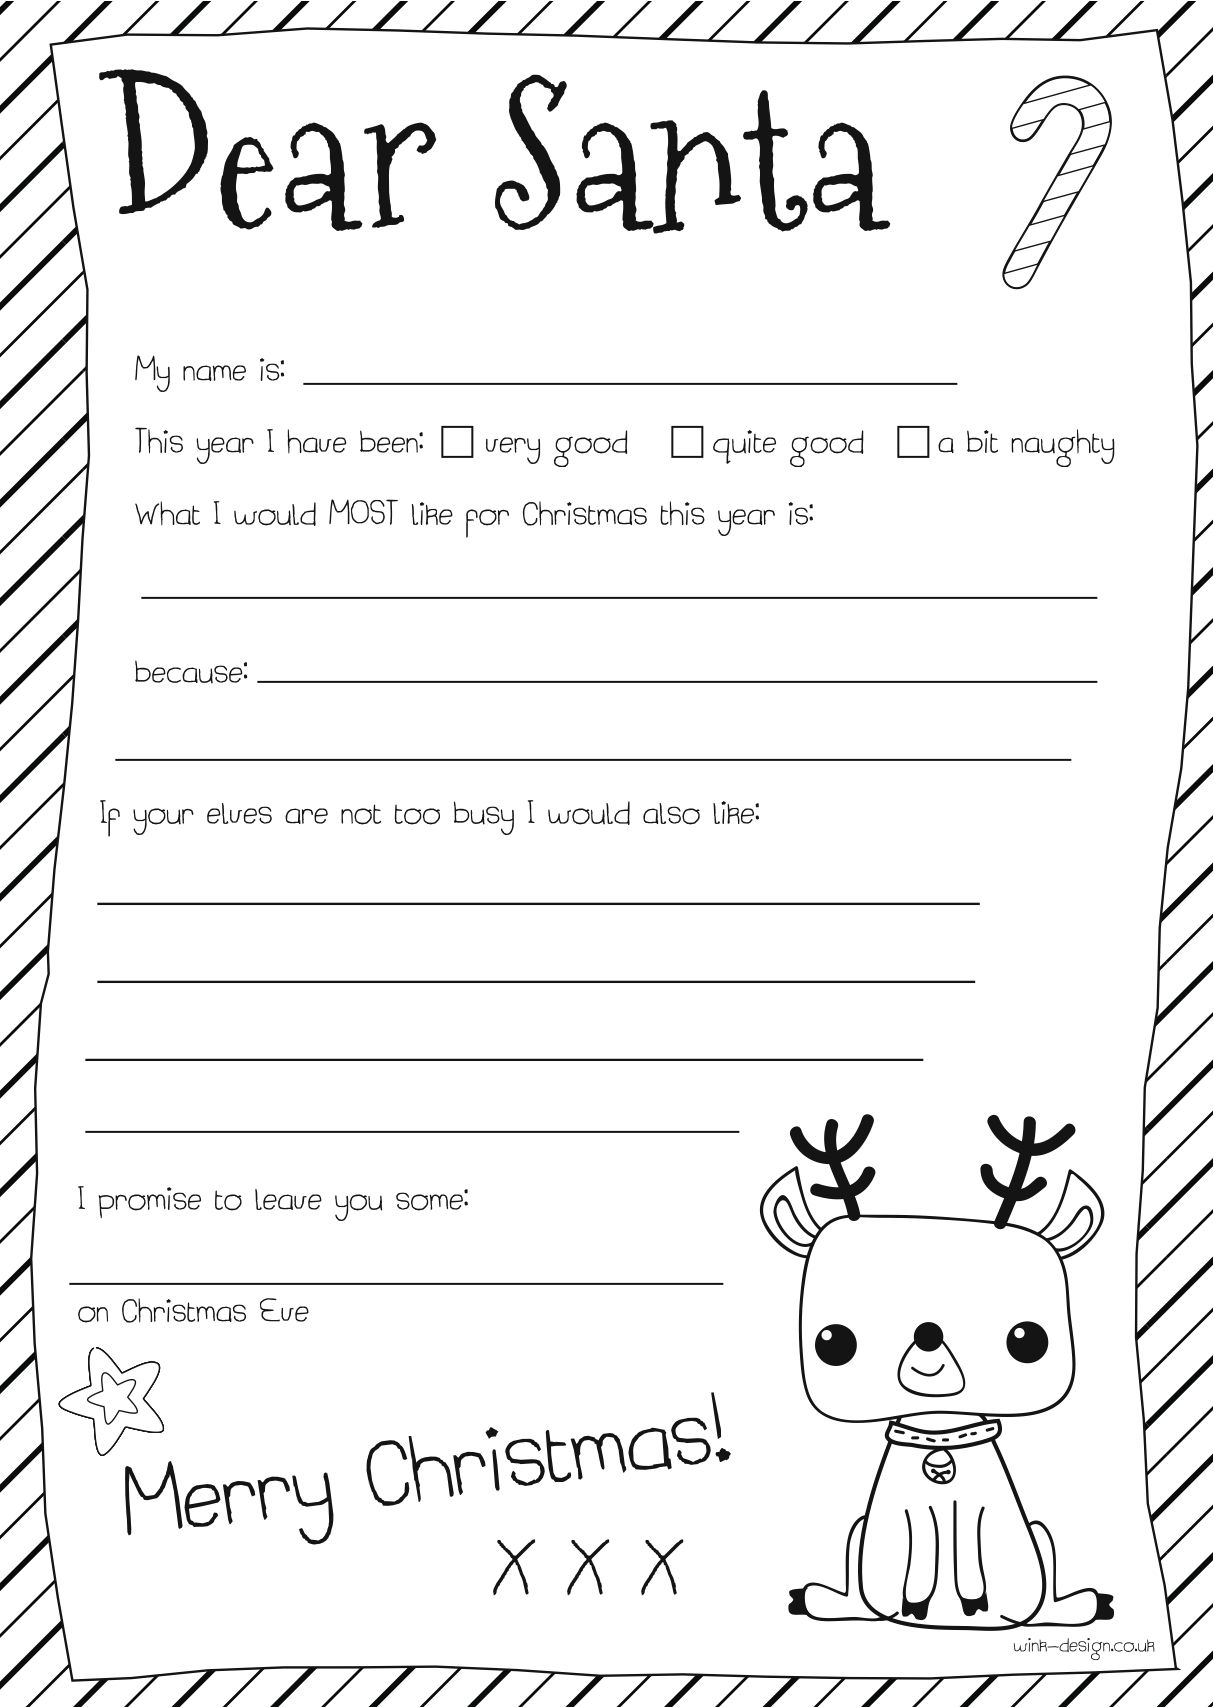 Dear santa letter christmas lets talk aboutto santa pinterest dear santa letter christmas letter templatefree printable spiritdancerdesigns Choice Image